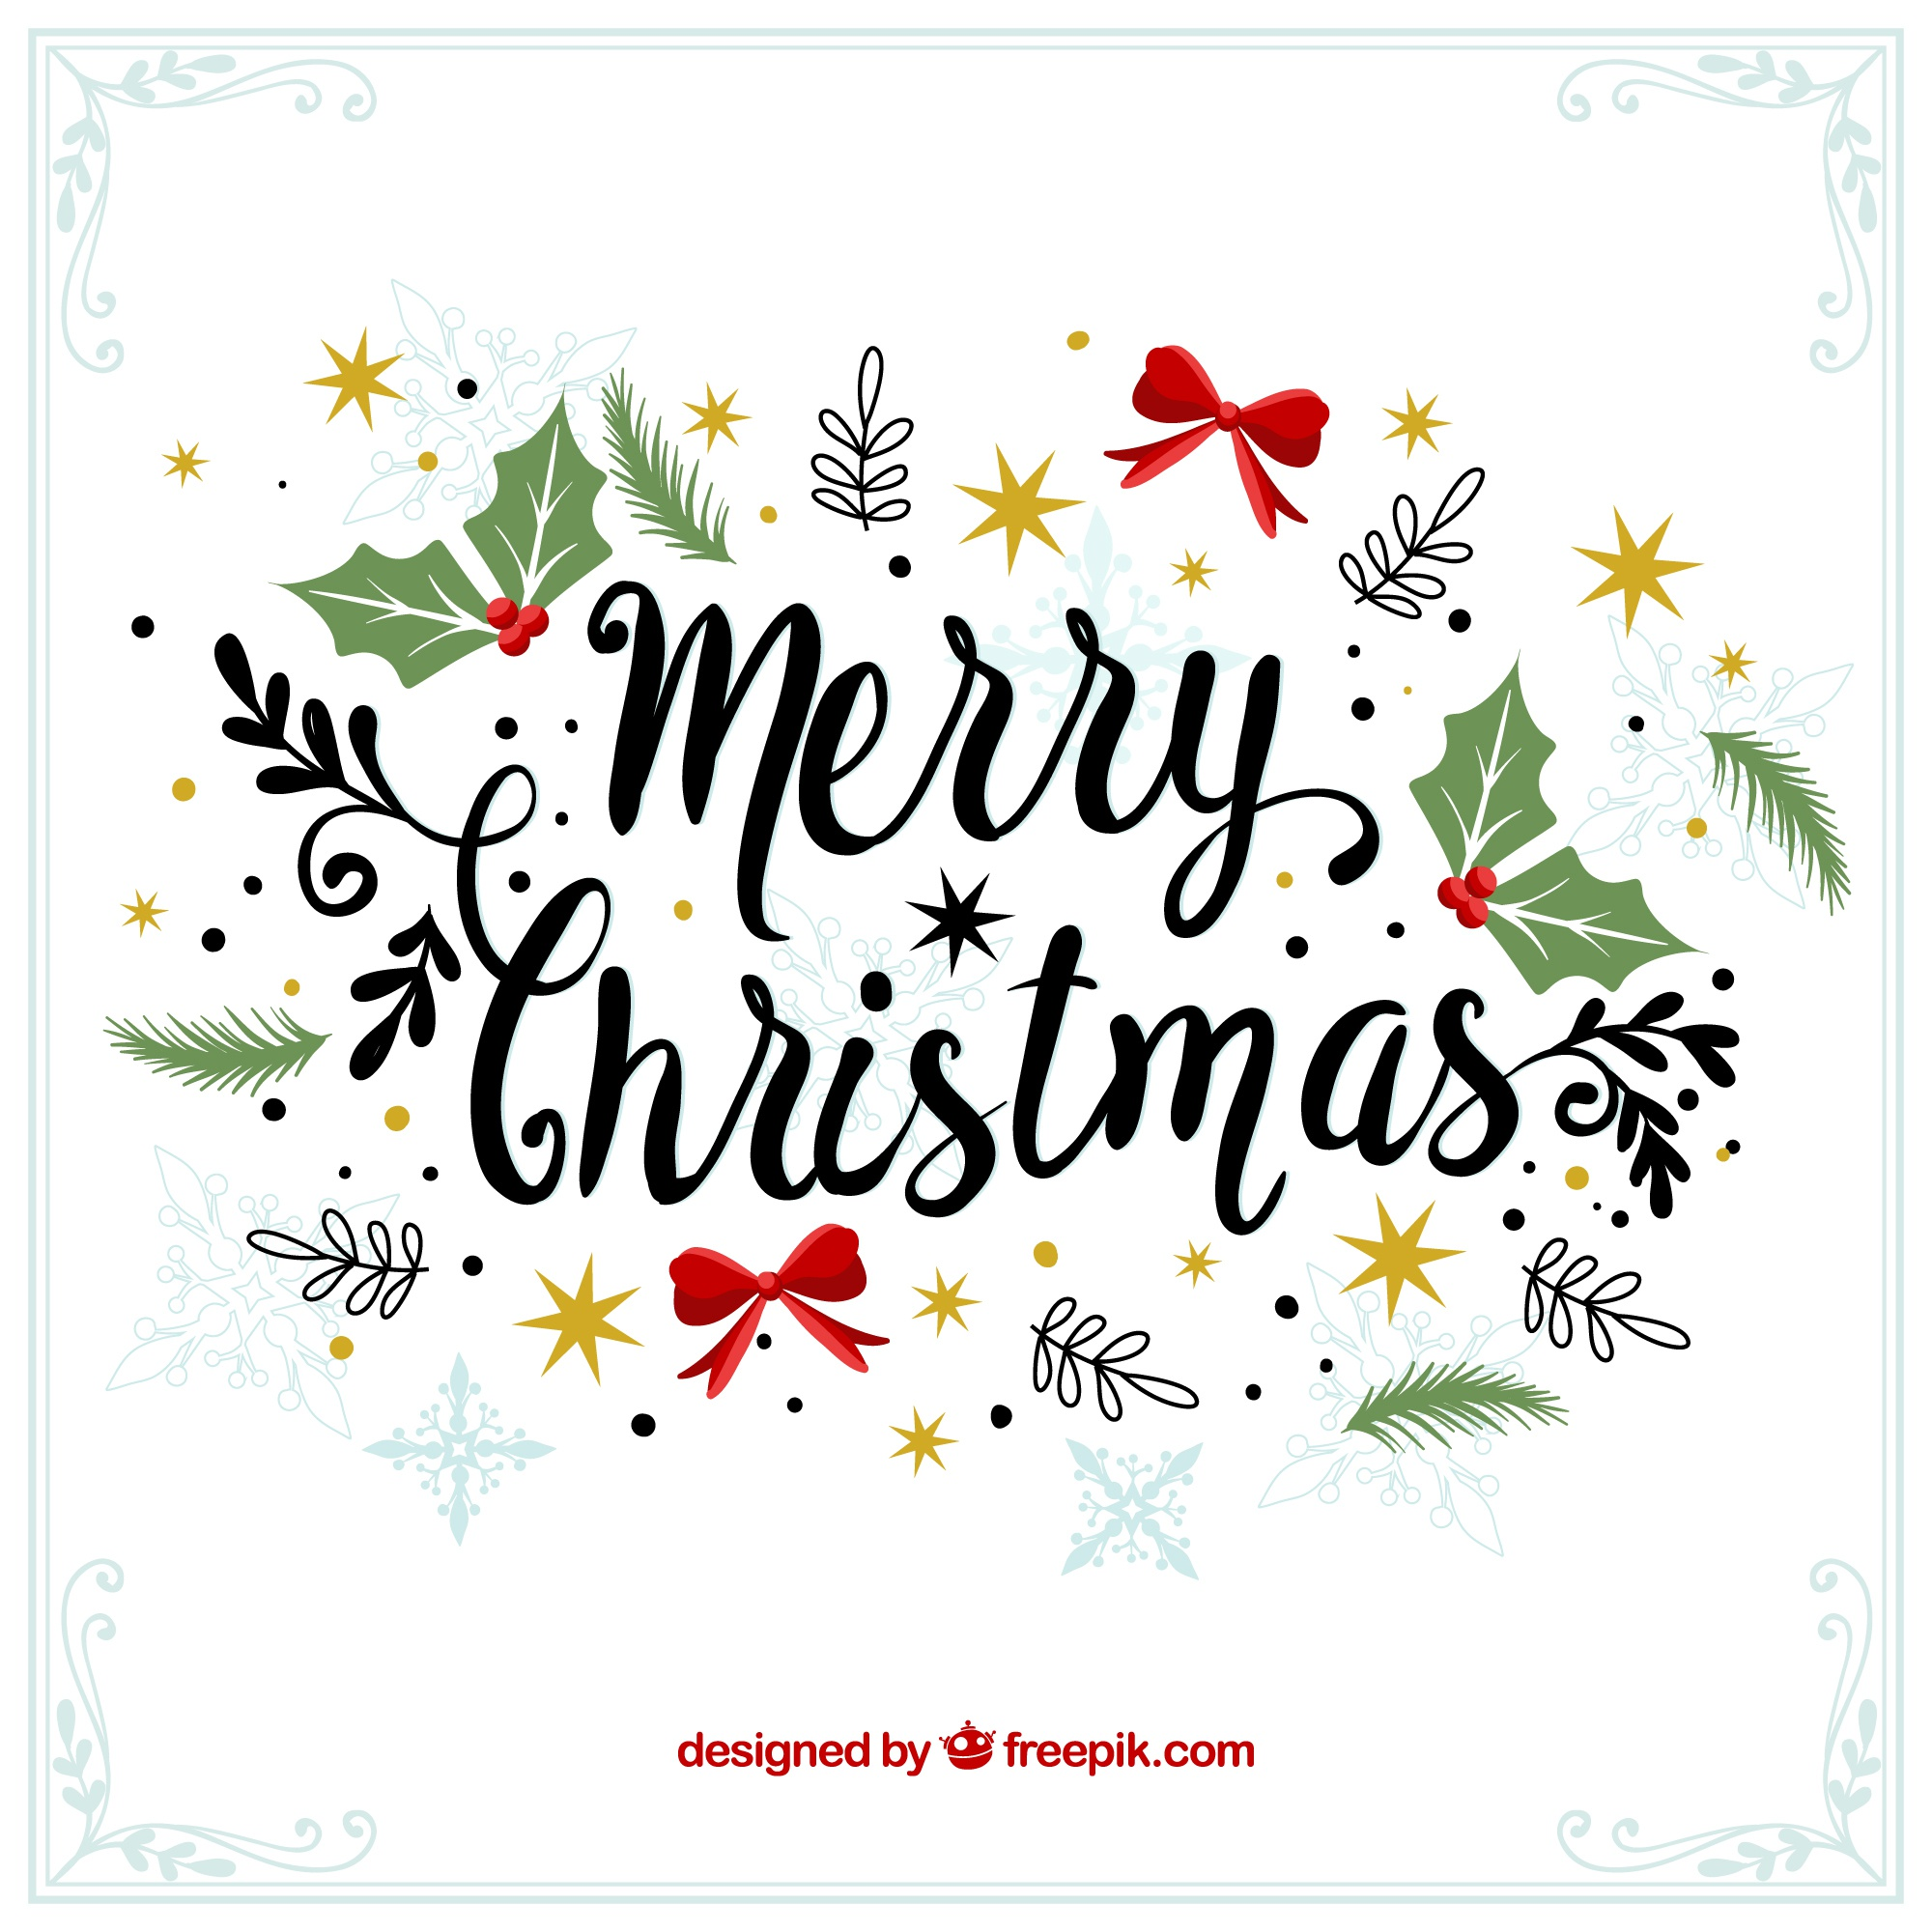 Merry christmas decorative vintage background